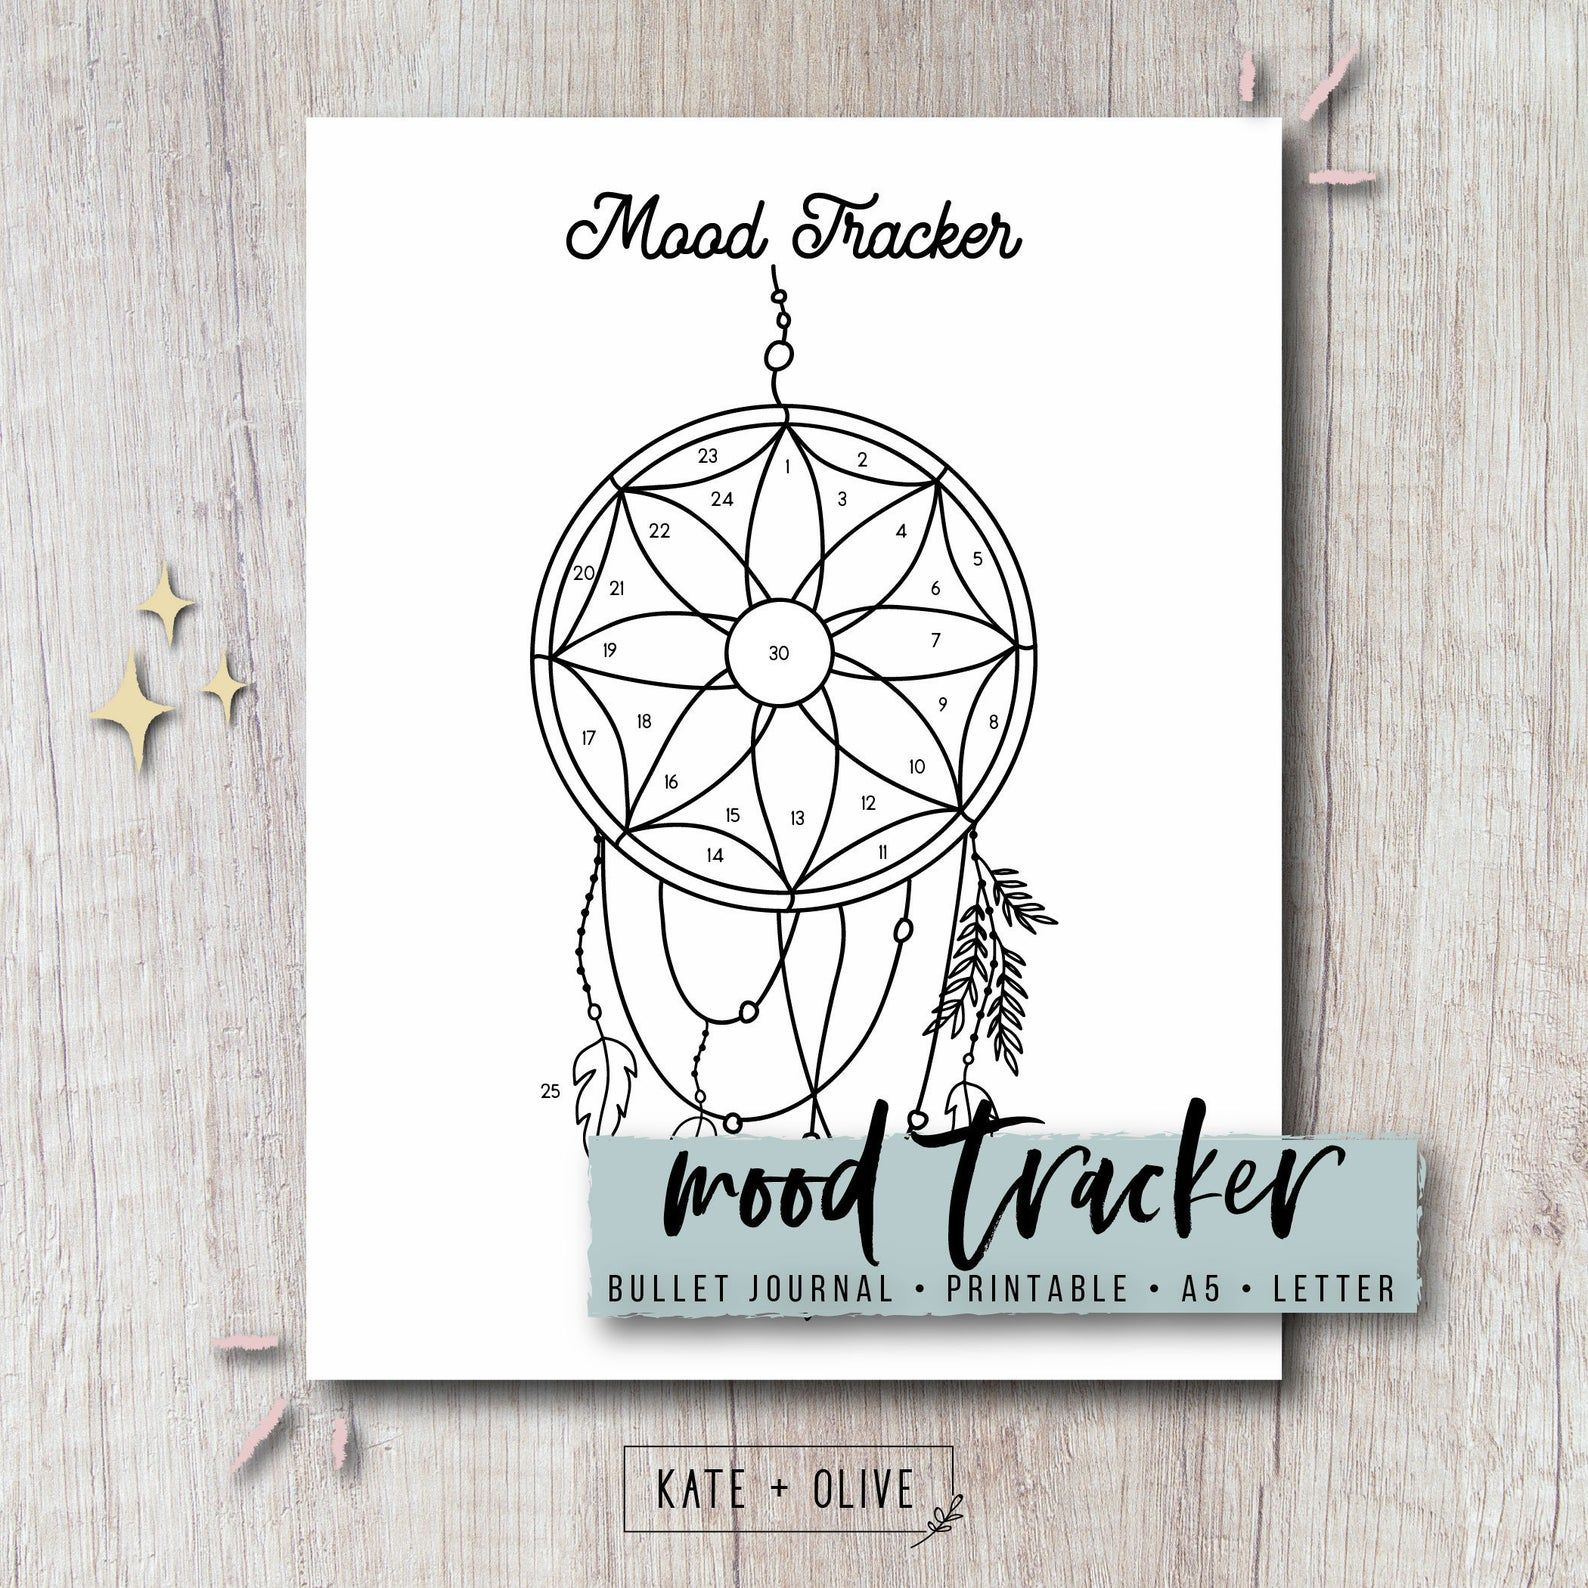 Mood Tracker Printable Insert